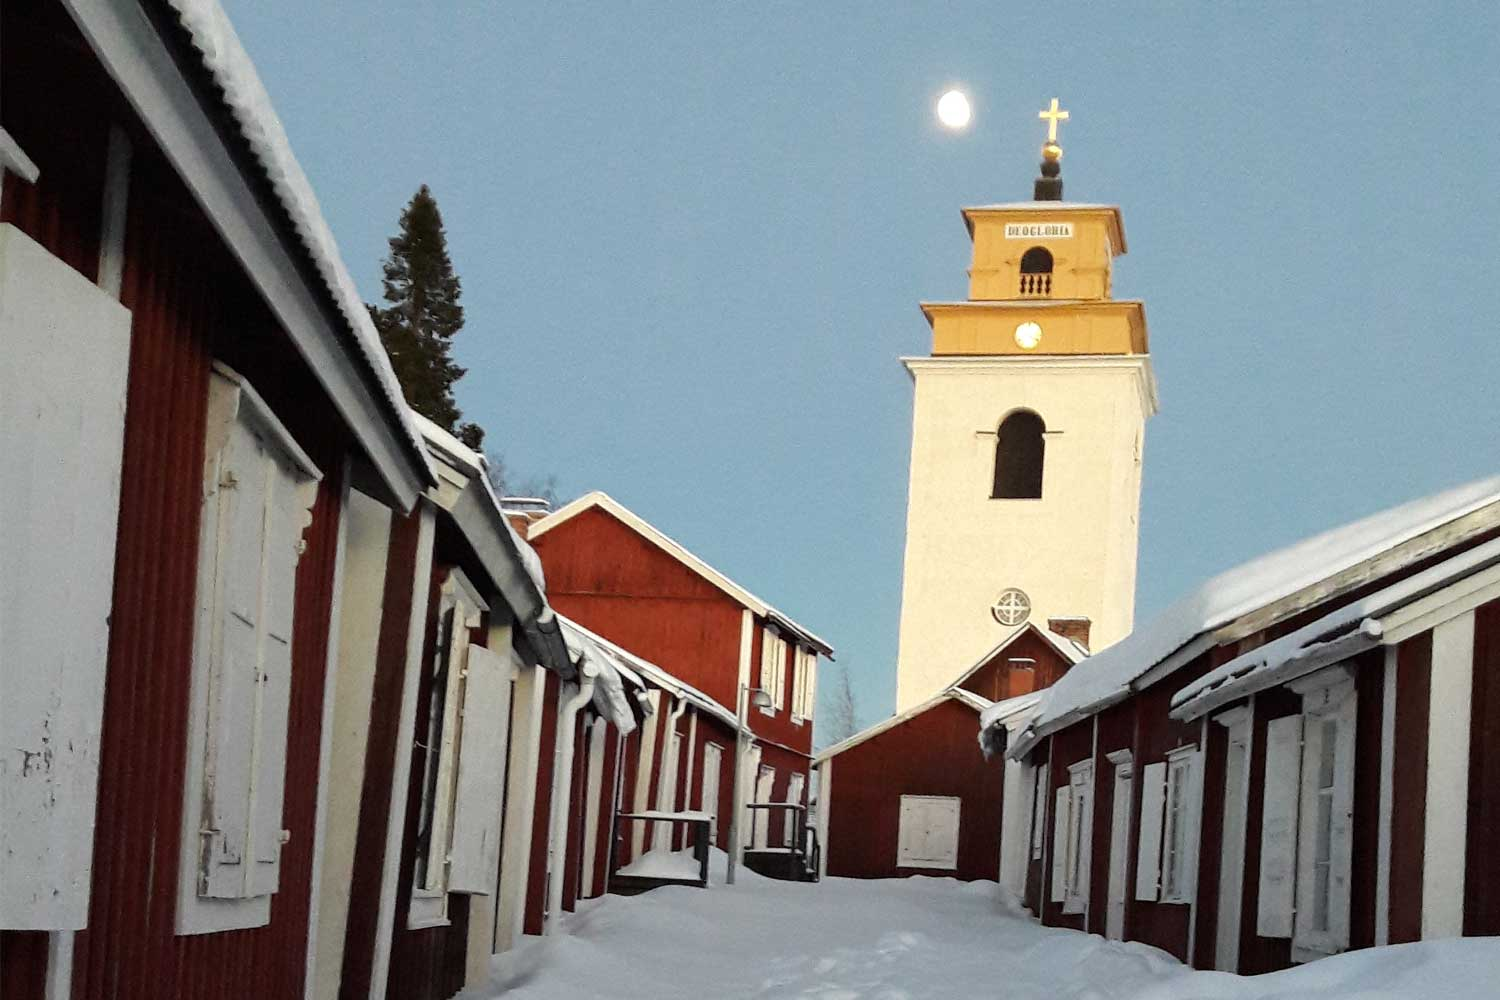 Jokkmokk winter market 2020